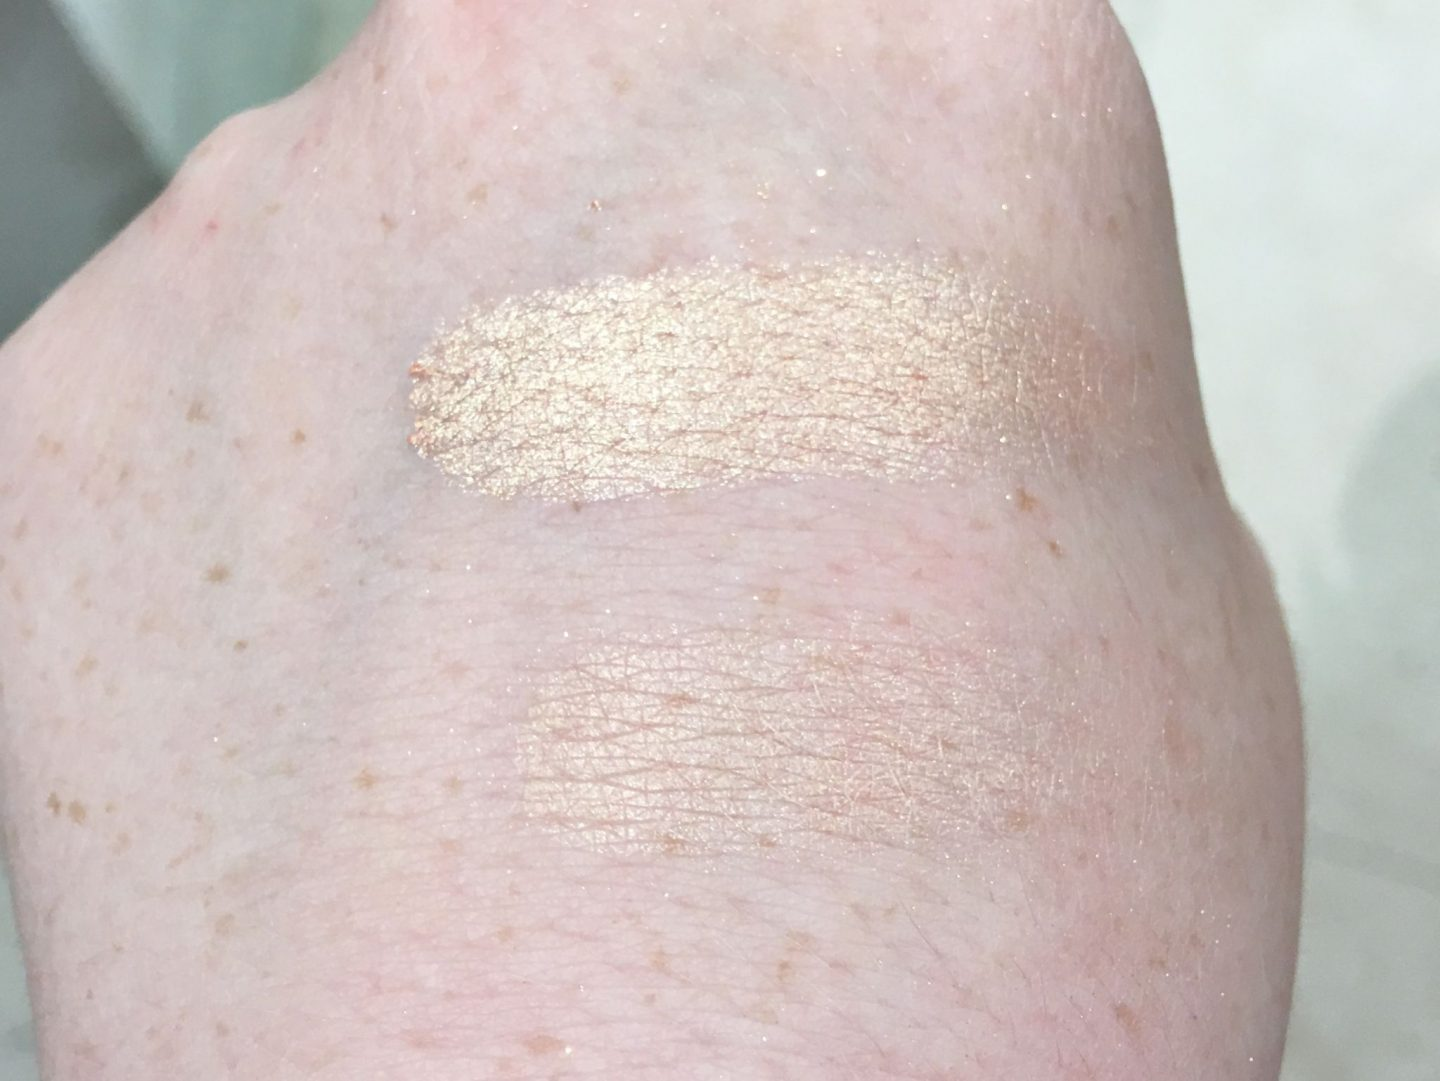 Fenty Beauty Killawatt Freestyle Highlighter Duo in Mean Mny Hustle Bby swatches